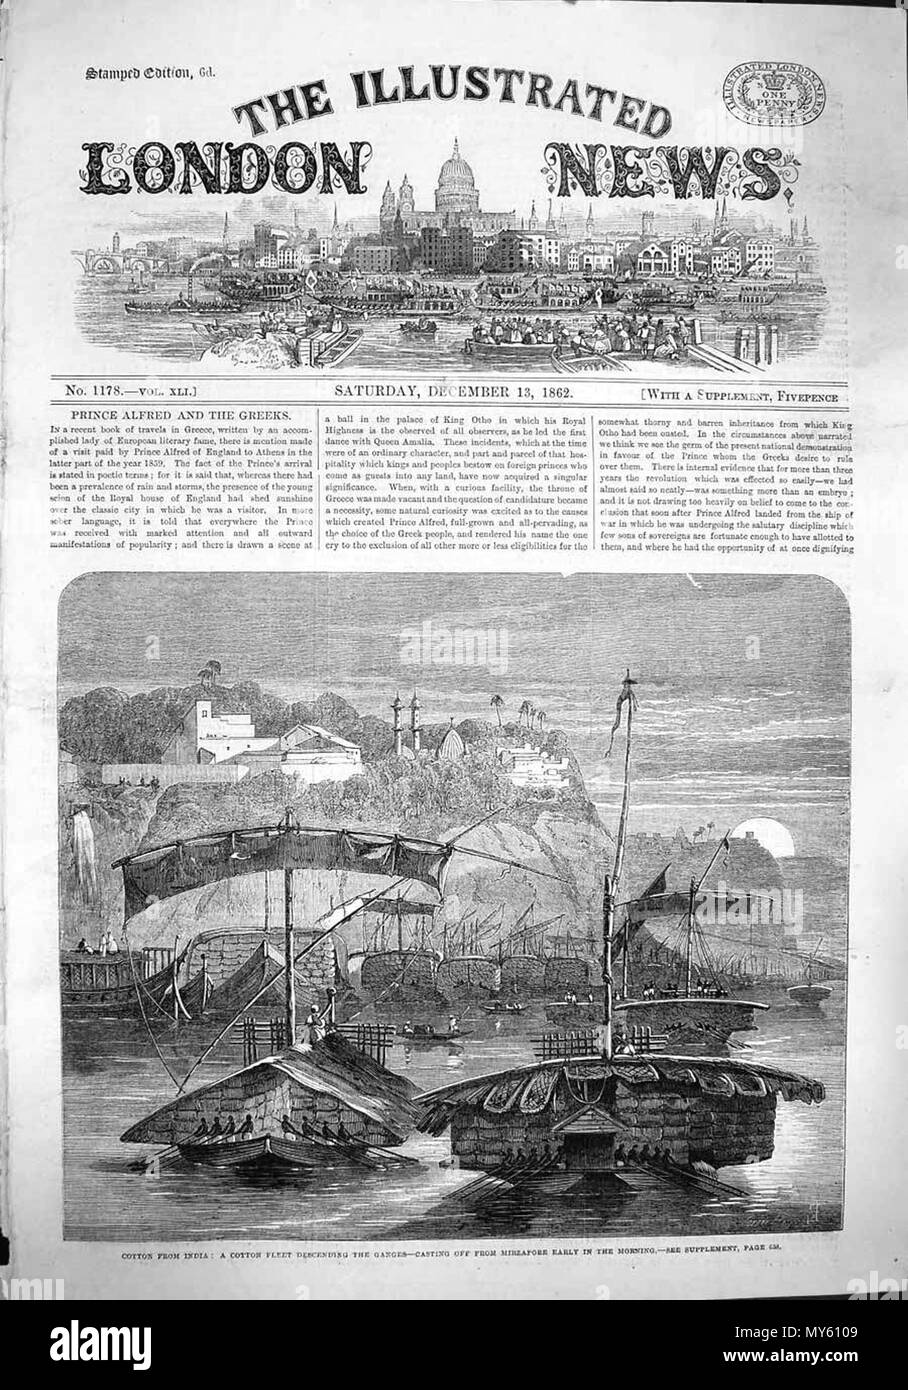 . English: 'Cotton from India: a cotton convoy proceeding from Rewah towards the Ganges--night encampment under a banyan tree,' from the Illustrated London News, 1862; *a closer look at the cotton carts*; also: *'A cotton fleet descending the Ganges--casting off from Mirzapore early in the morning'*; also: *'The cotton famine'* Source: ebay, Oct. 2005 . 1862. Illustrated London News 17 A cotton fleet descending the Ganges--casting off from Mirzapore early in the morning Stock Photo